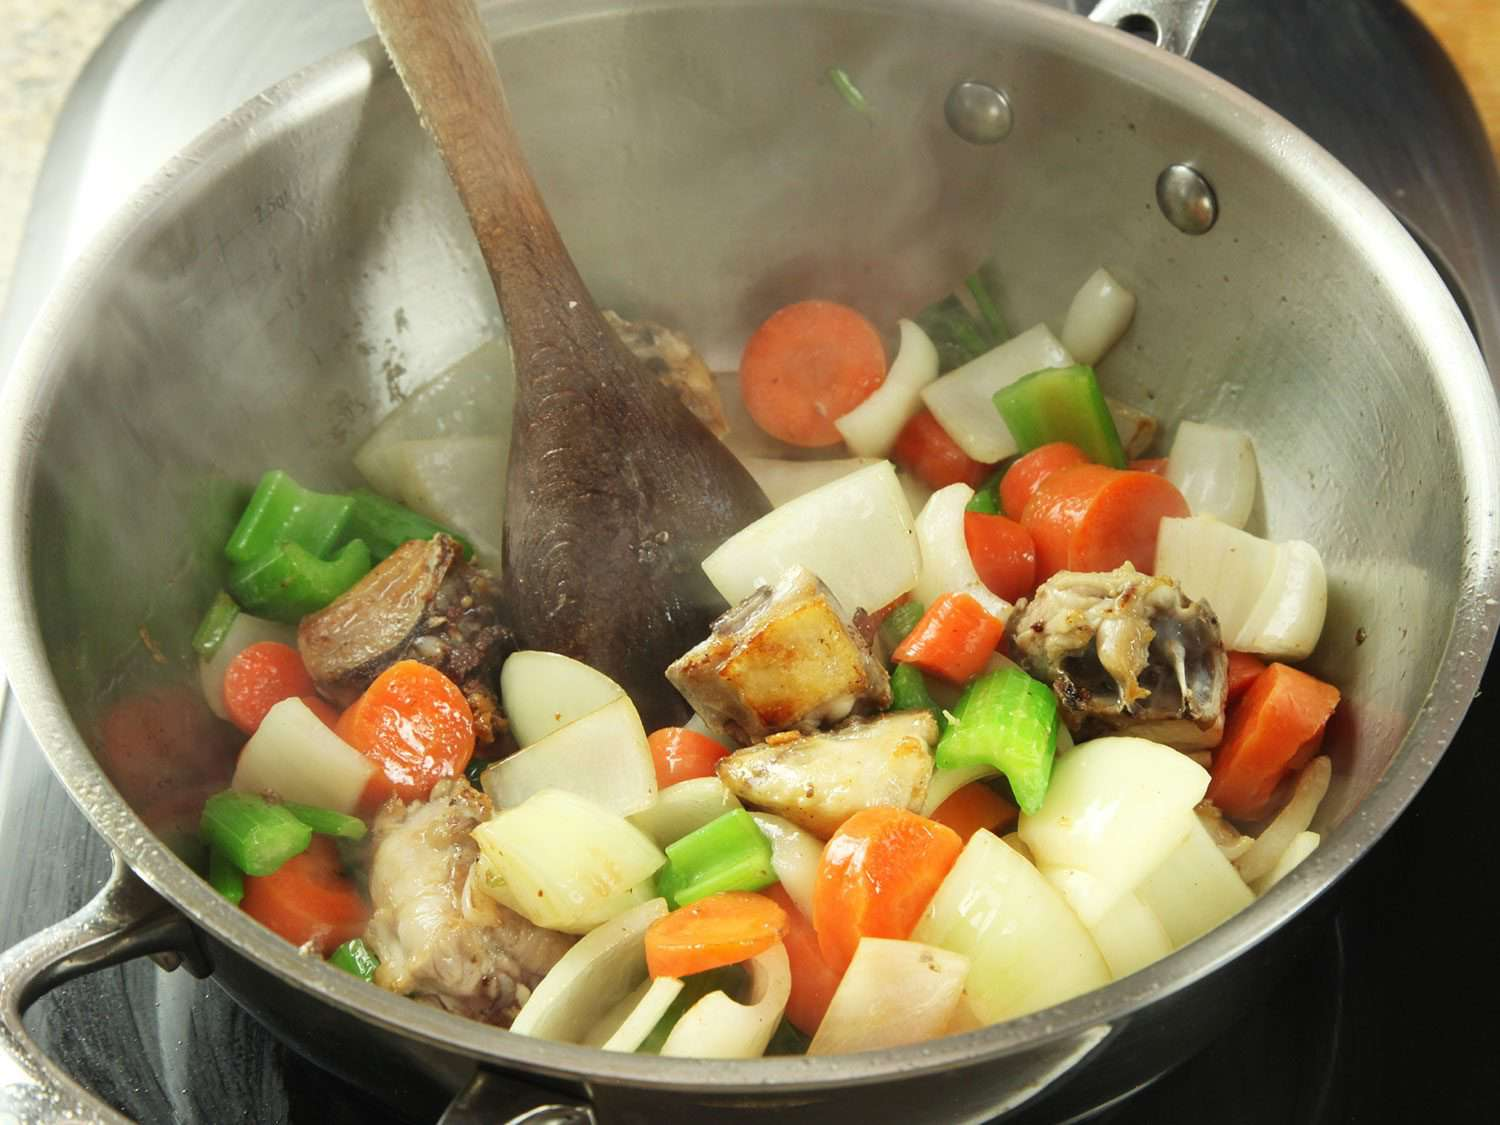 Vegetables and chicken back pieces sautéing in pan to make jus.